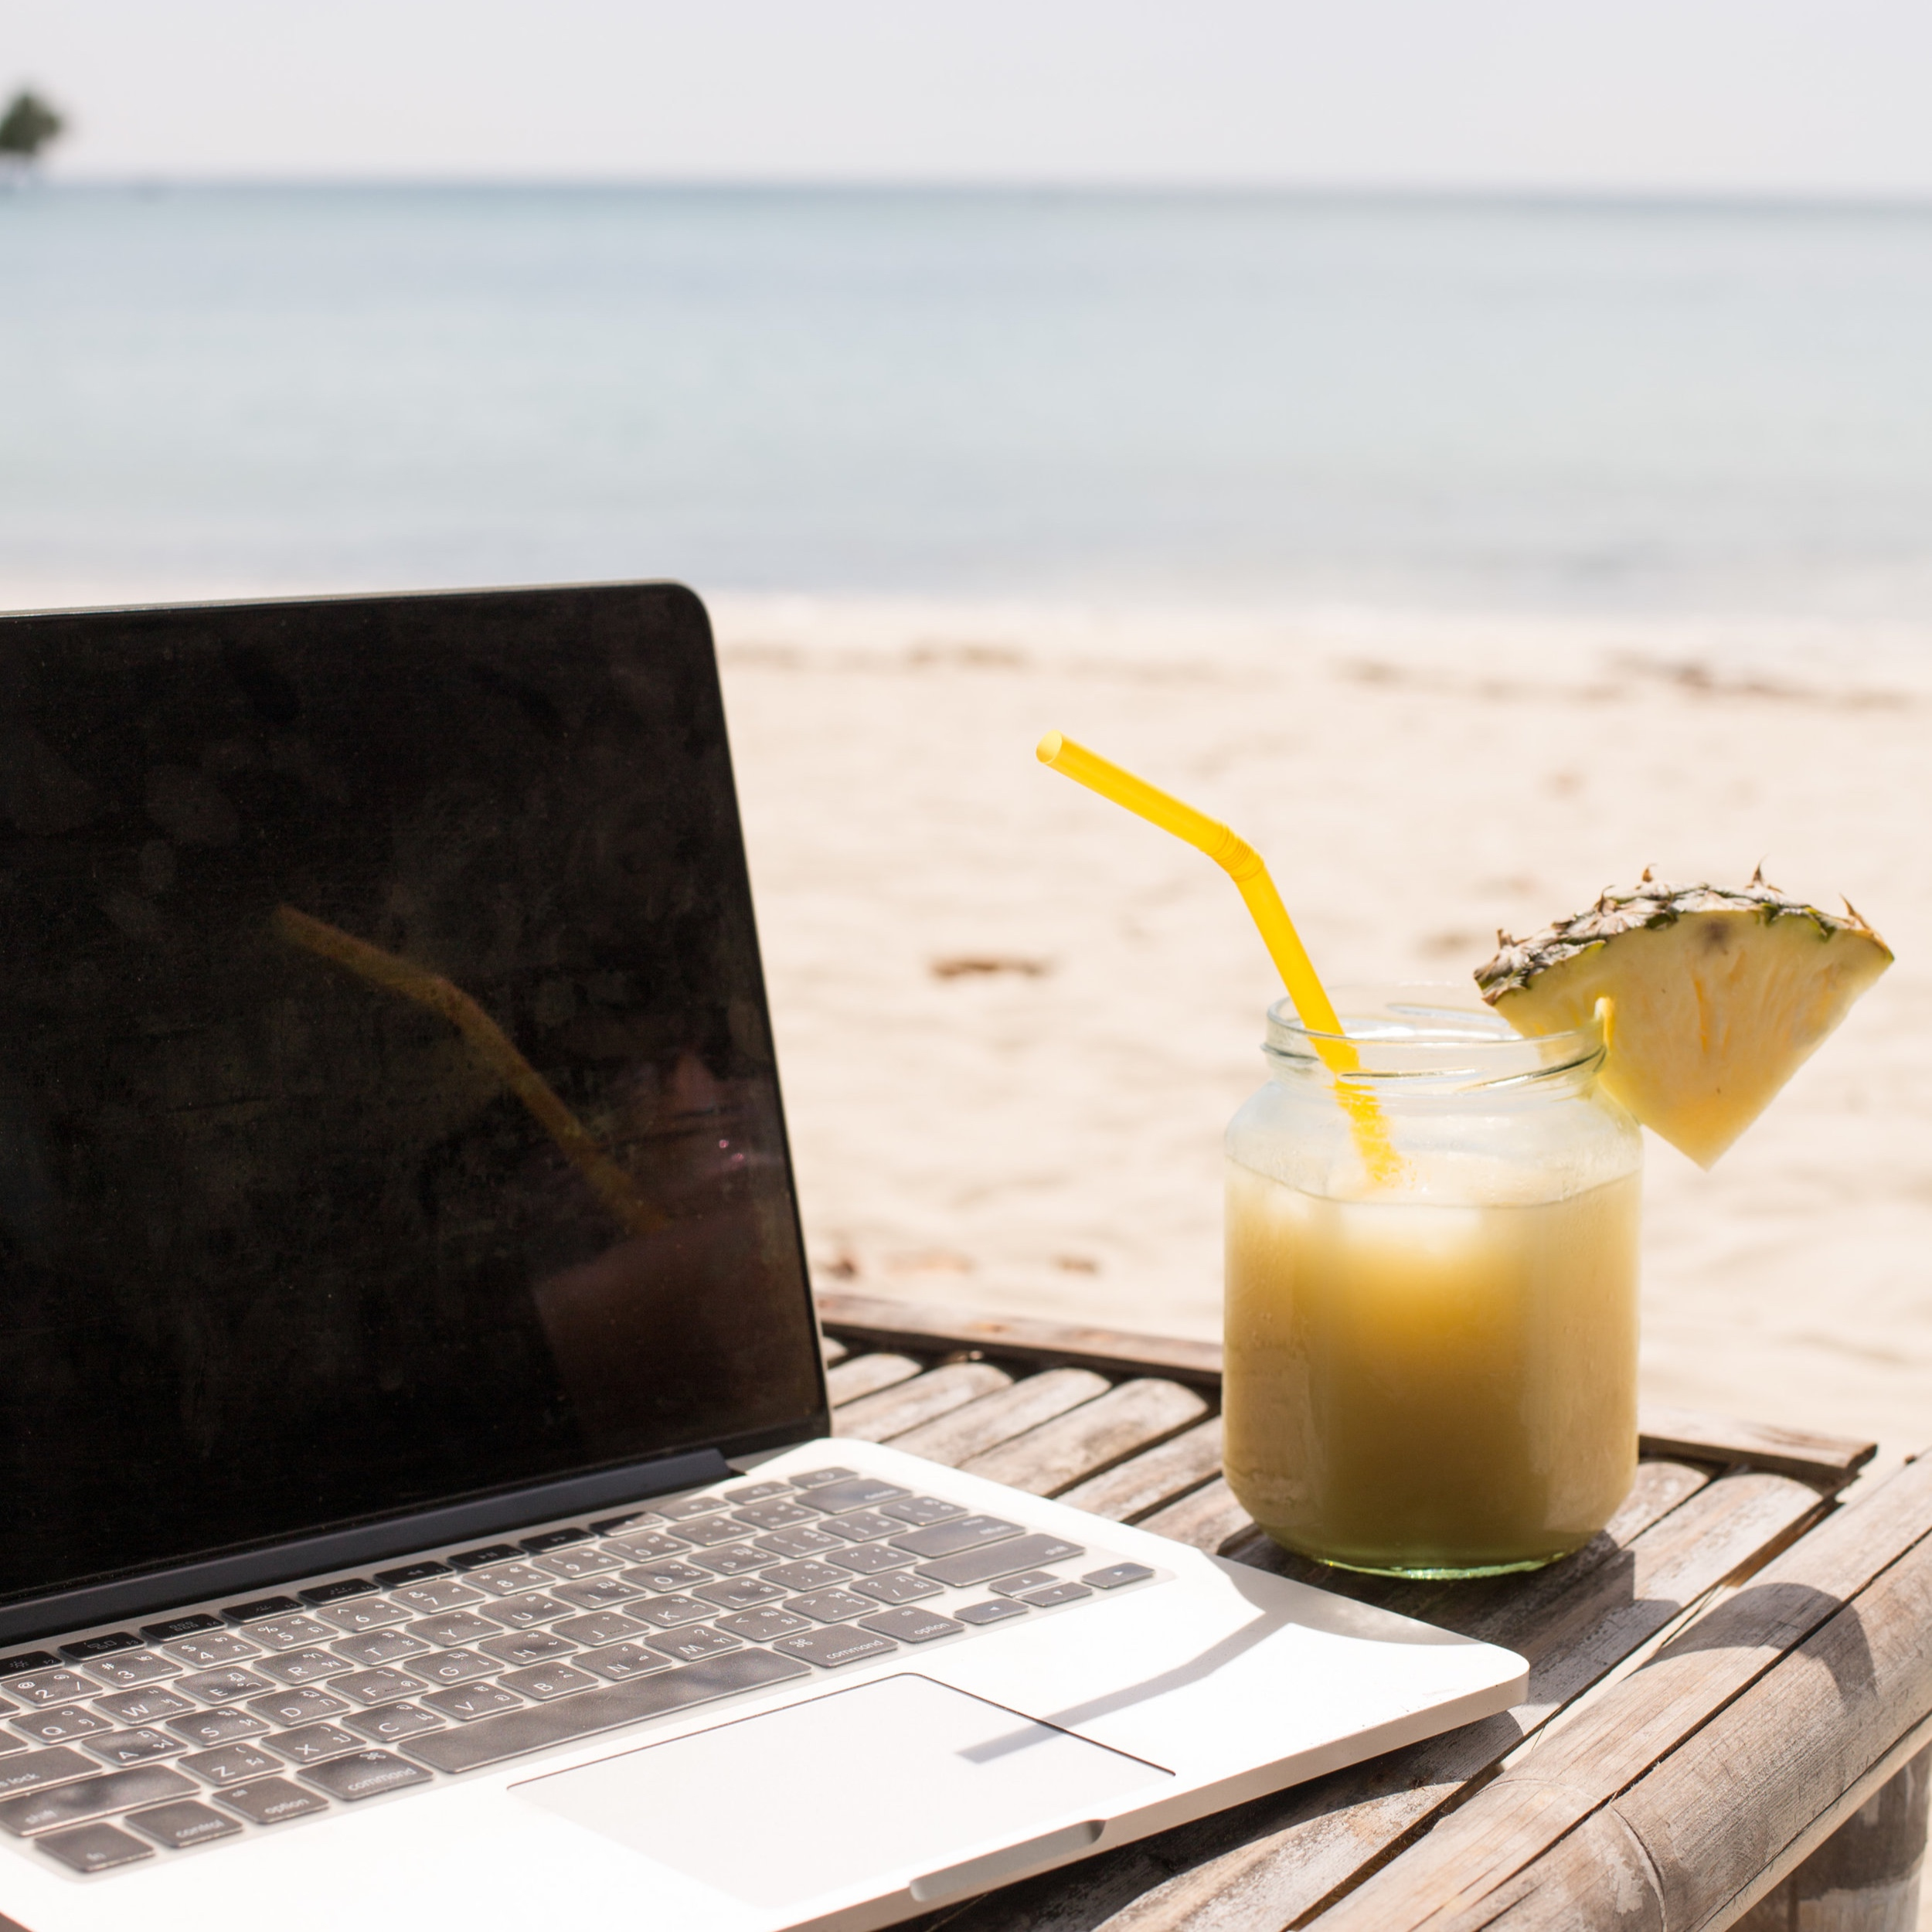 Work+from+wherever+by+Styled+Life+Stock+-+15.jpg